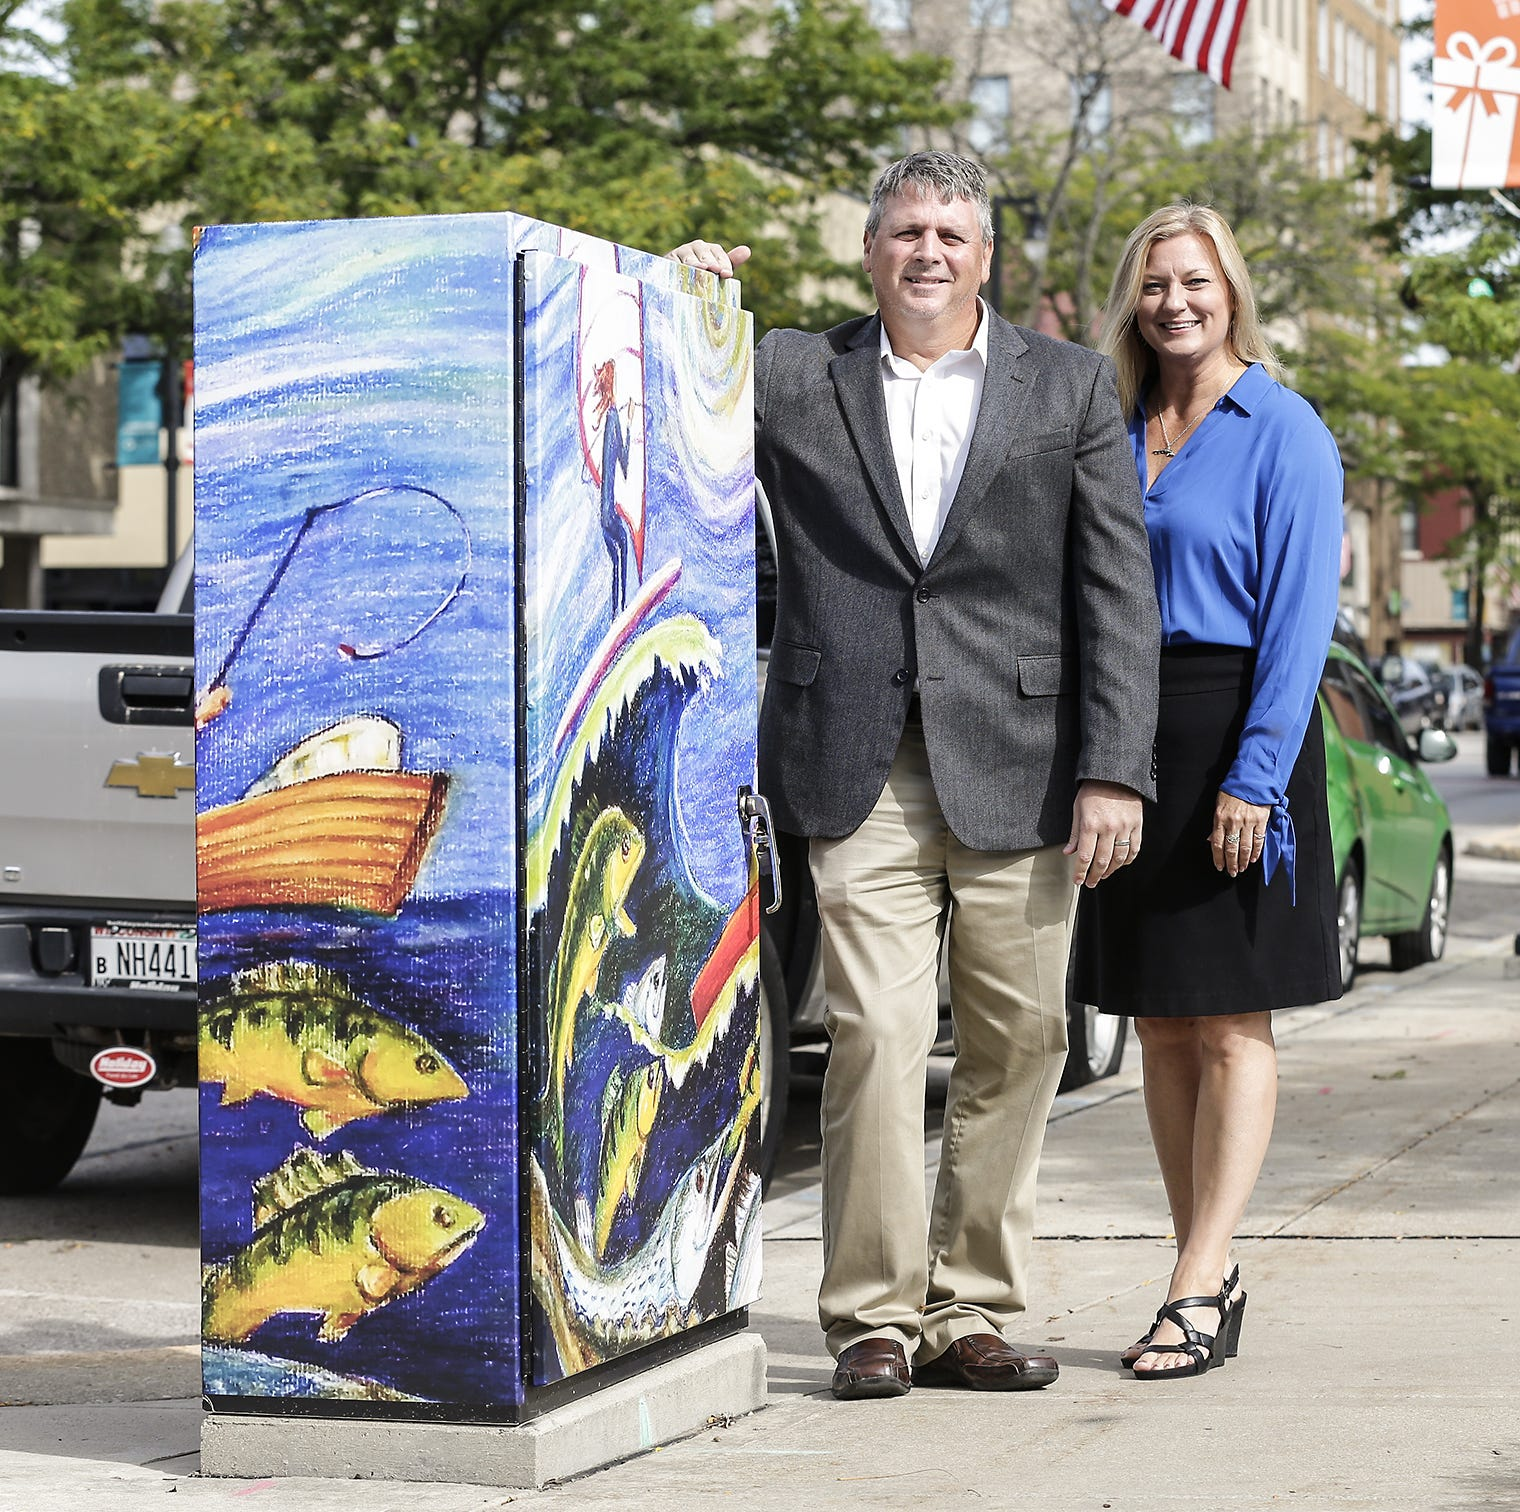 Waupun sees development, artwork comes to downtown FDL |Streetwise